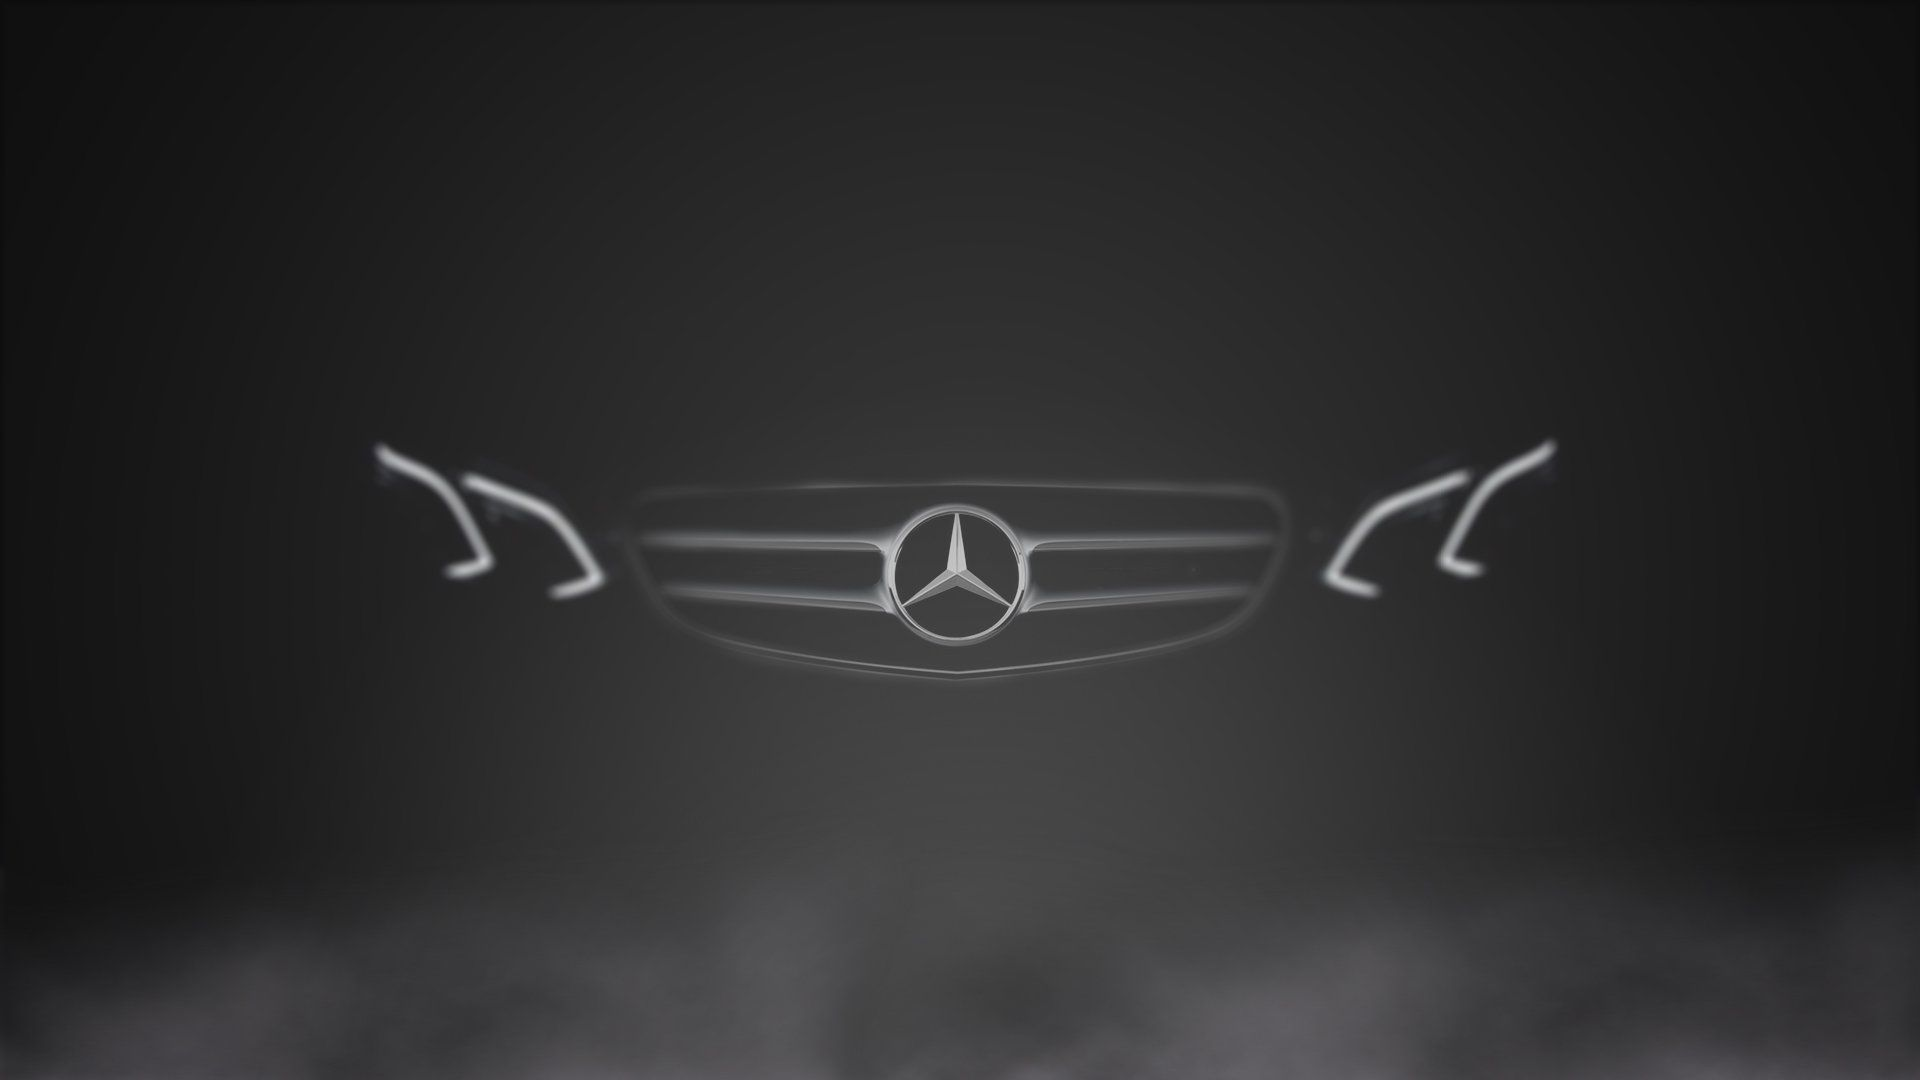 Mercedes Benz Logo Wallpapers Desktop To Download Wallpaper Benz